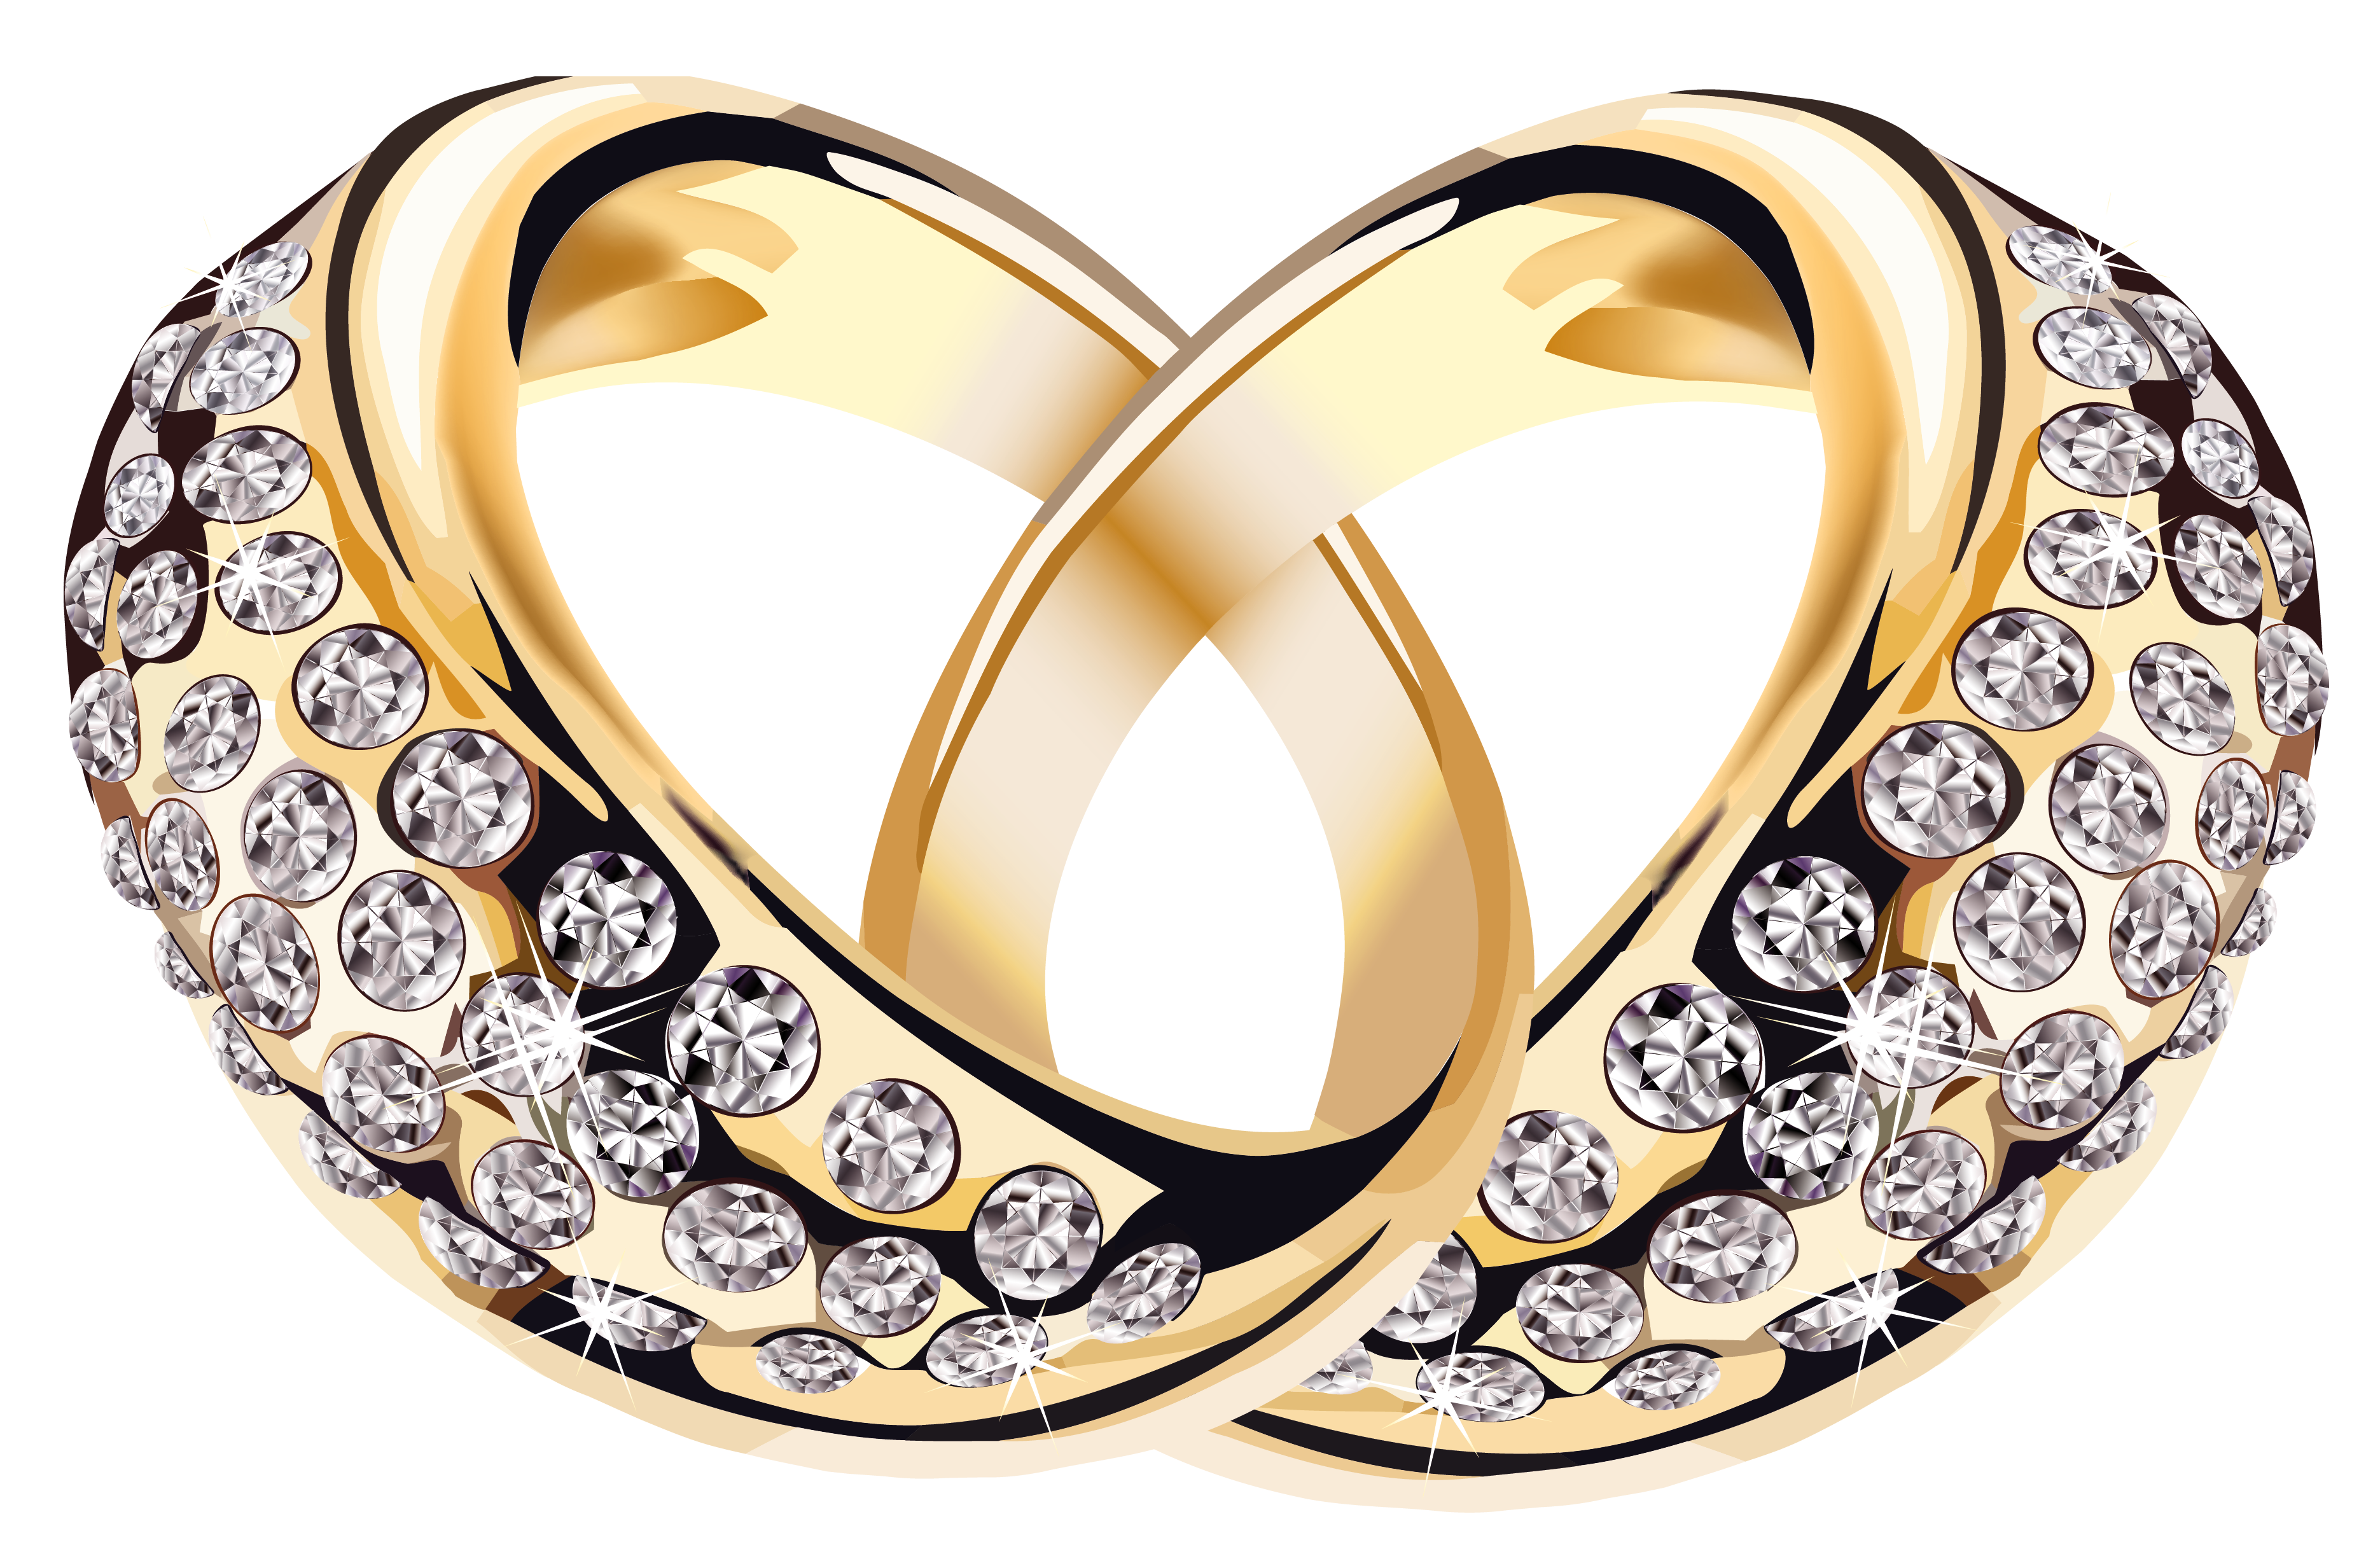 3741x2454 Gold Rings With Diamonds Png Clipart Pictureu200b Gallery